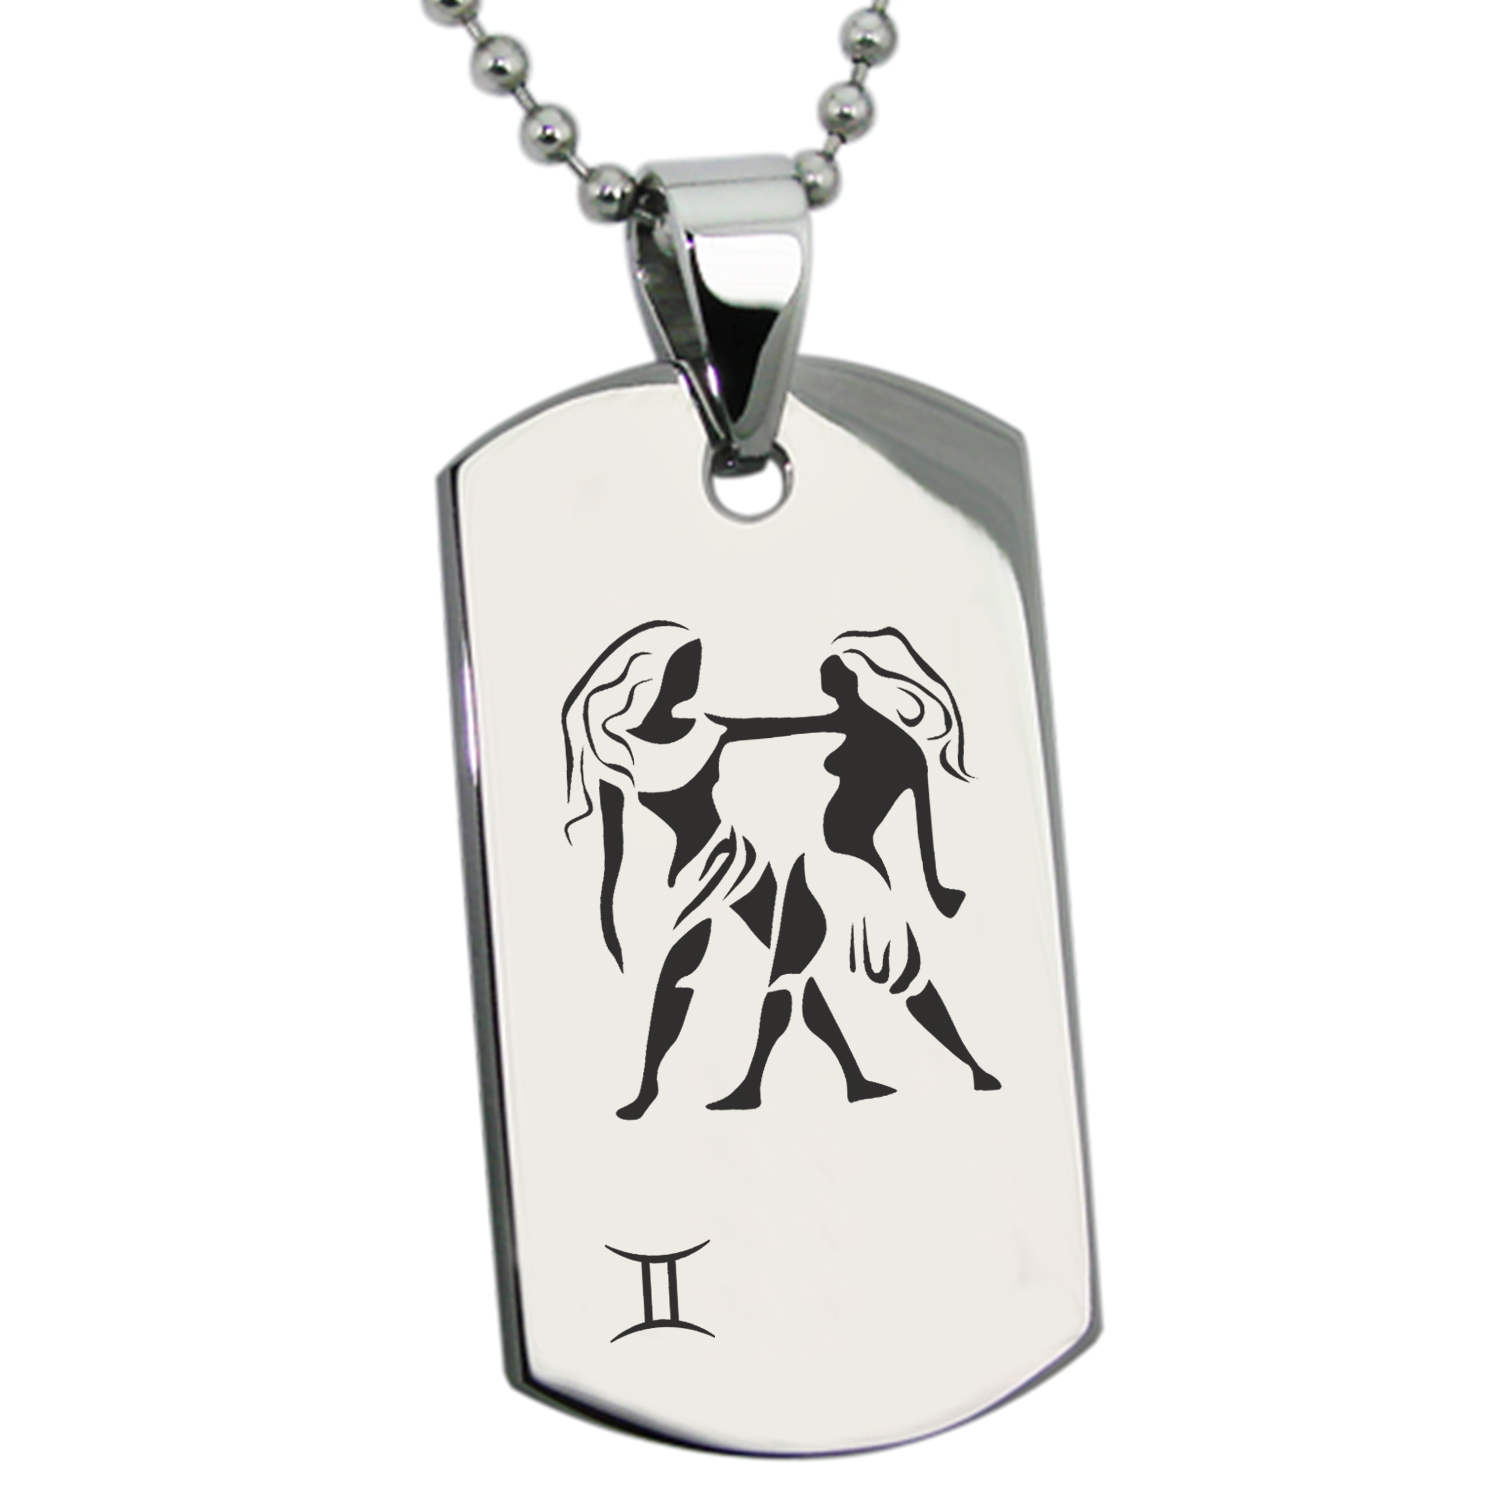 Stainless Steel Gemini Astrology Zodiac Sign Engraved Dog Tag Pendant